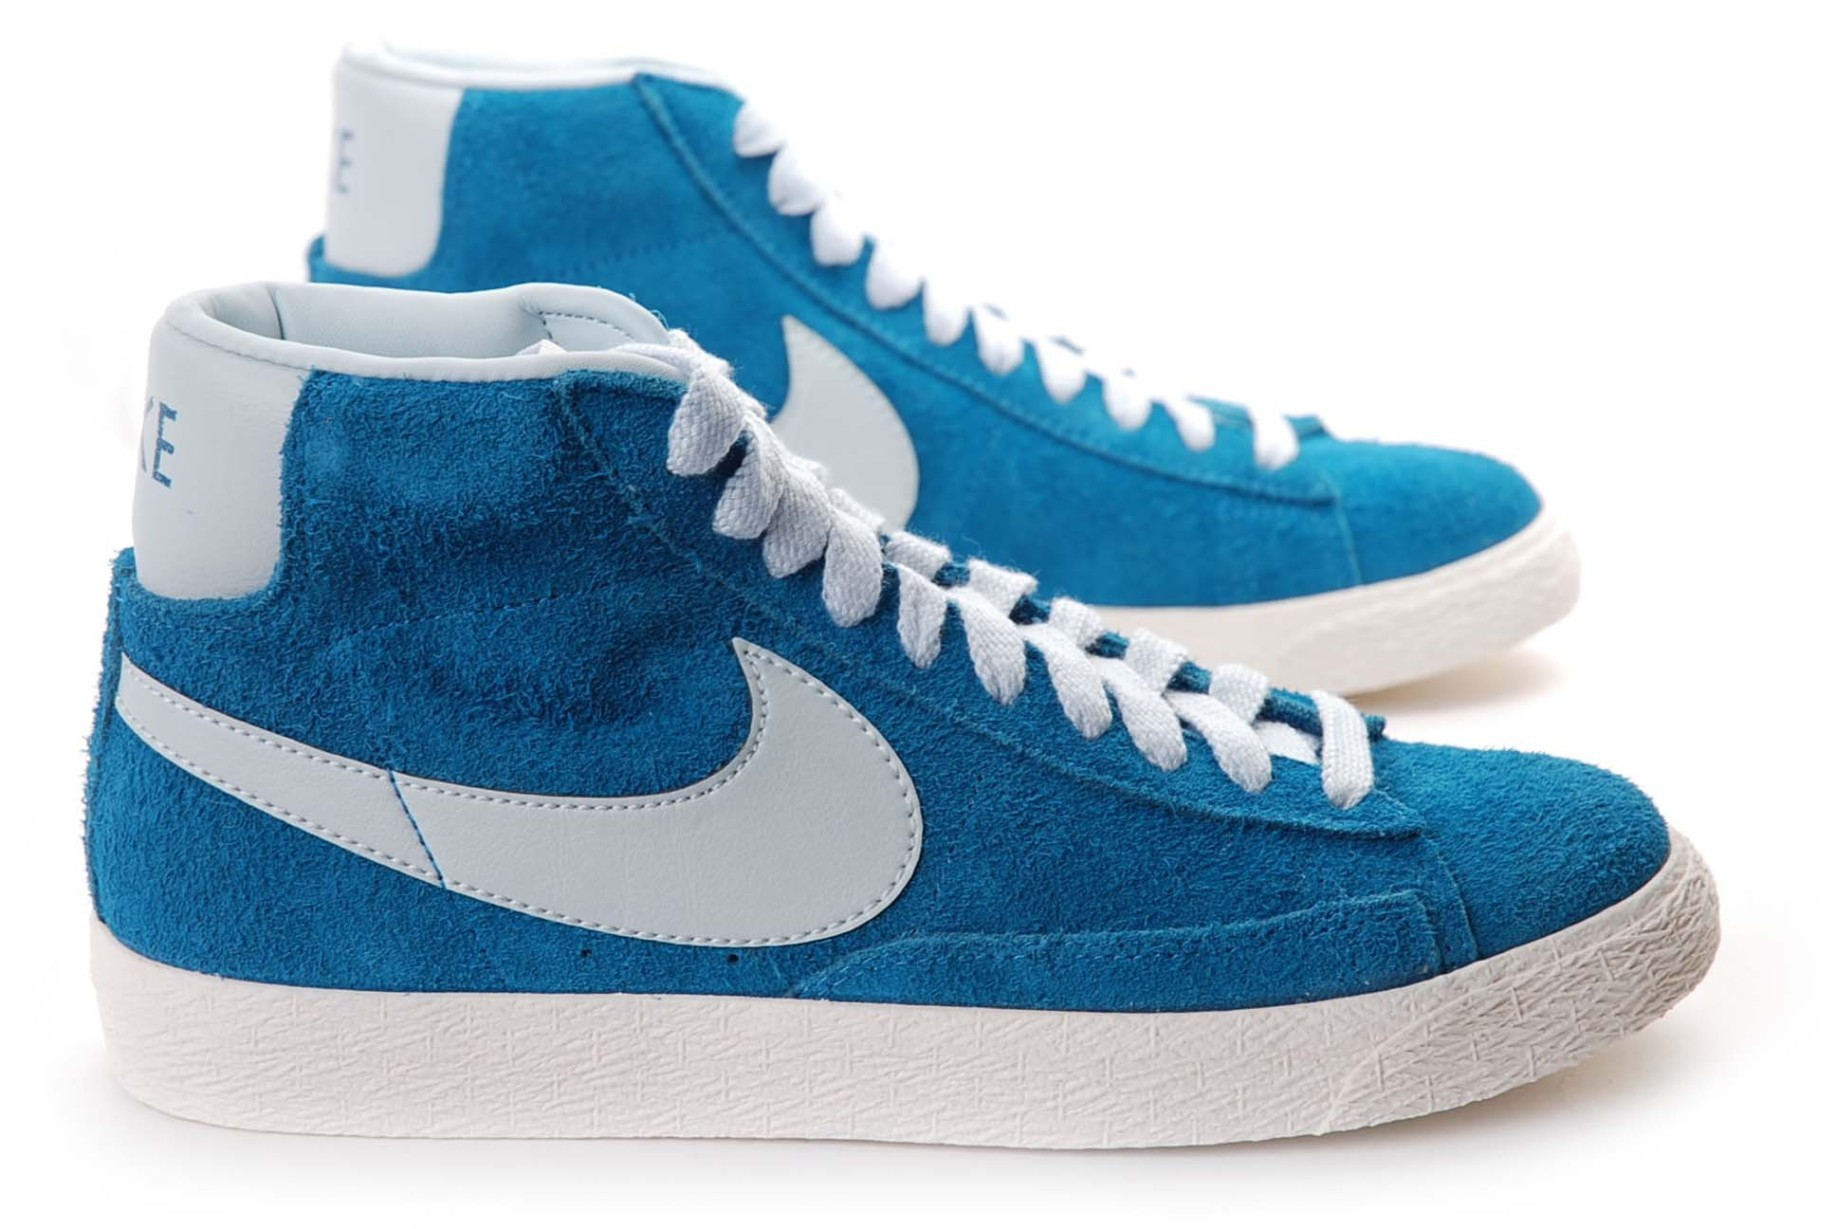 new style 8558d cd120 Shoes mens Blazer Mid Premium Vintage colore Blue - Nike - S